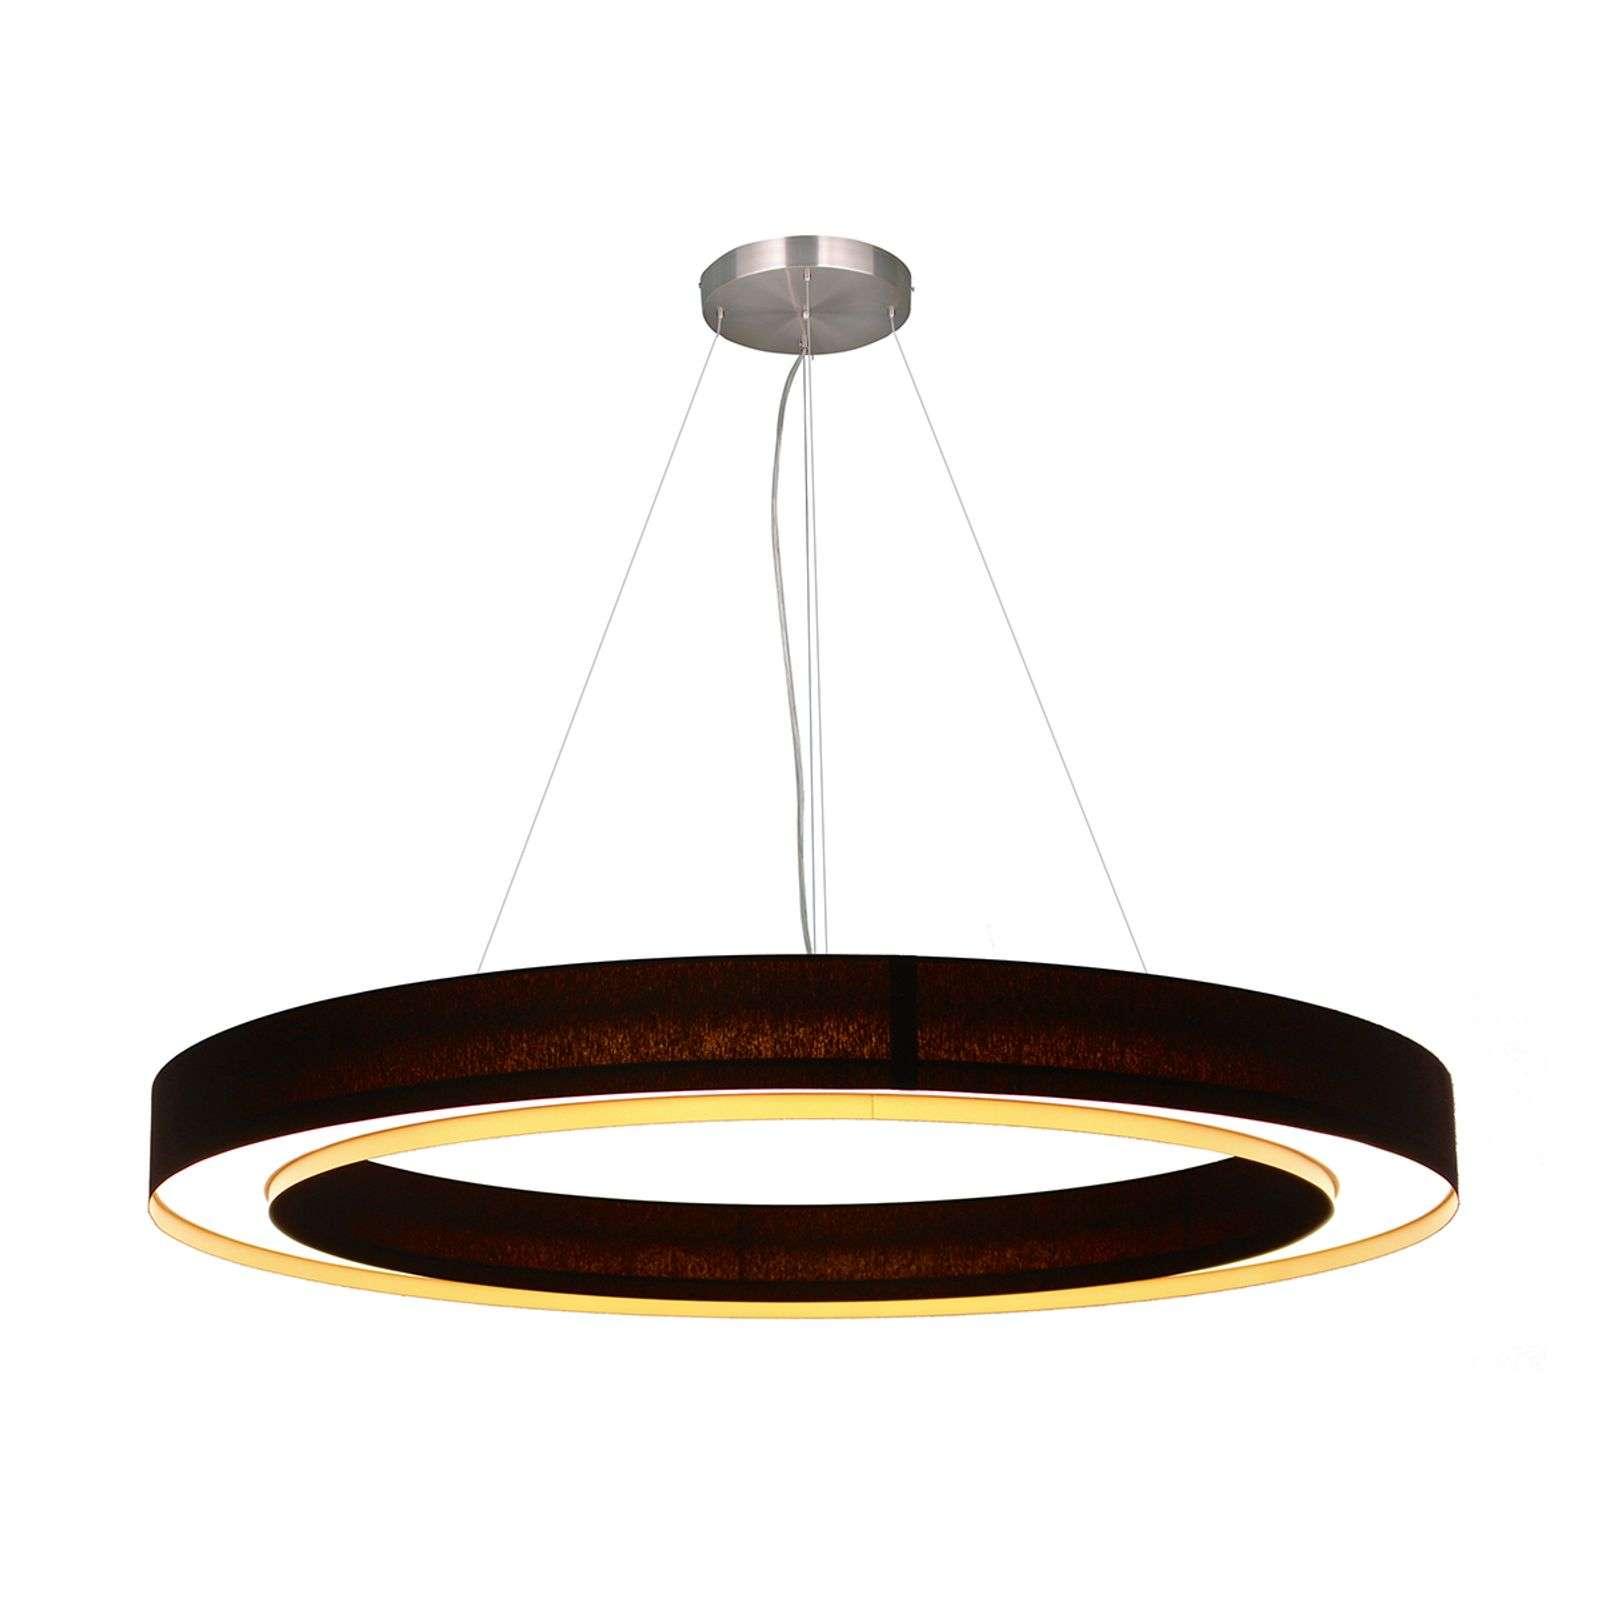 Suspension LED circulaire Cloud, 60 cm